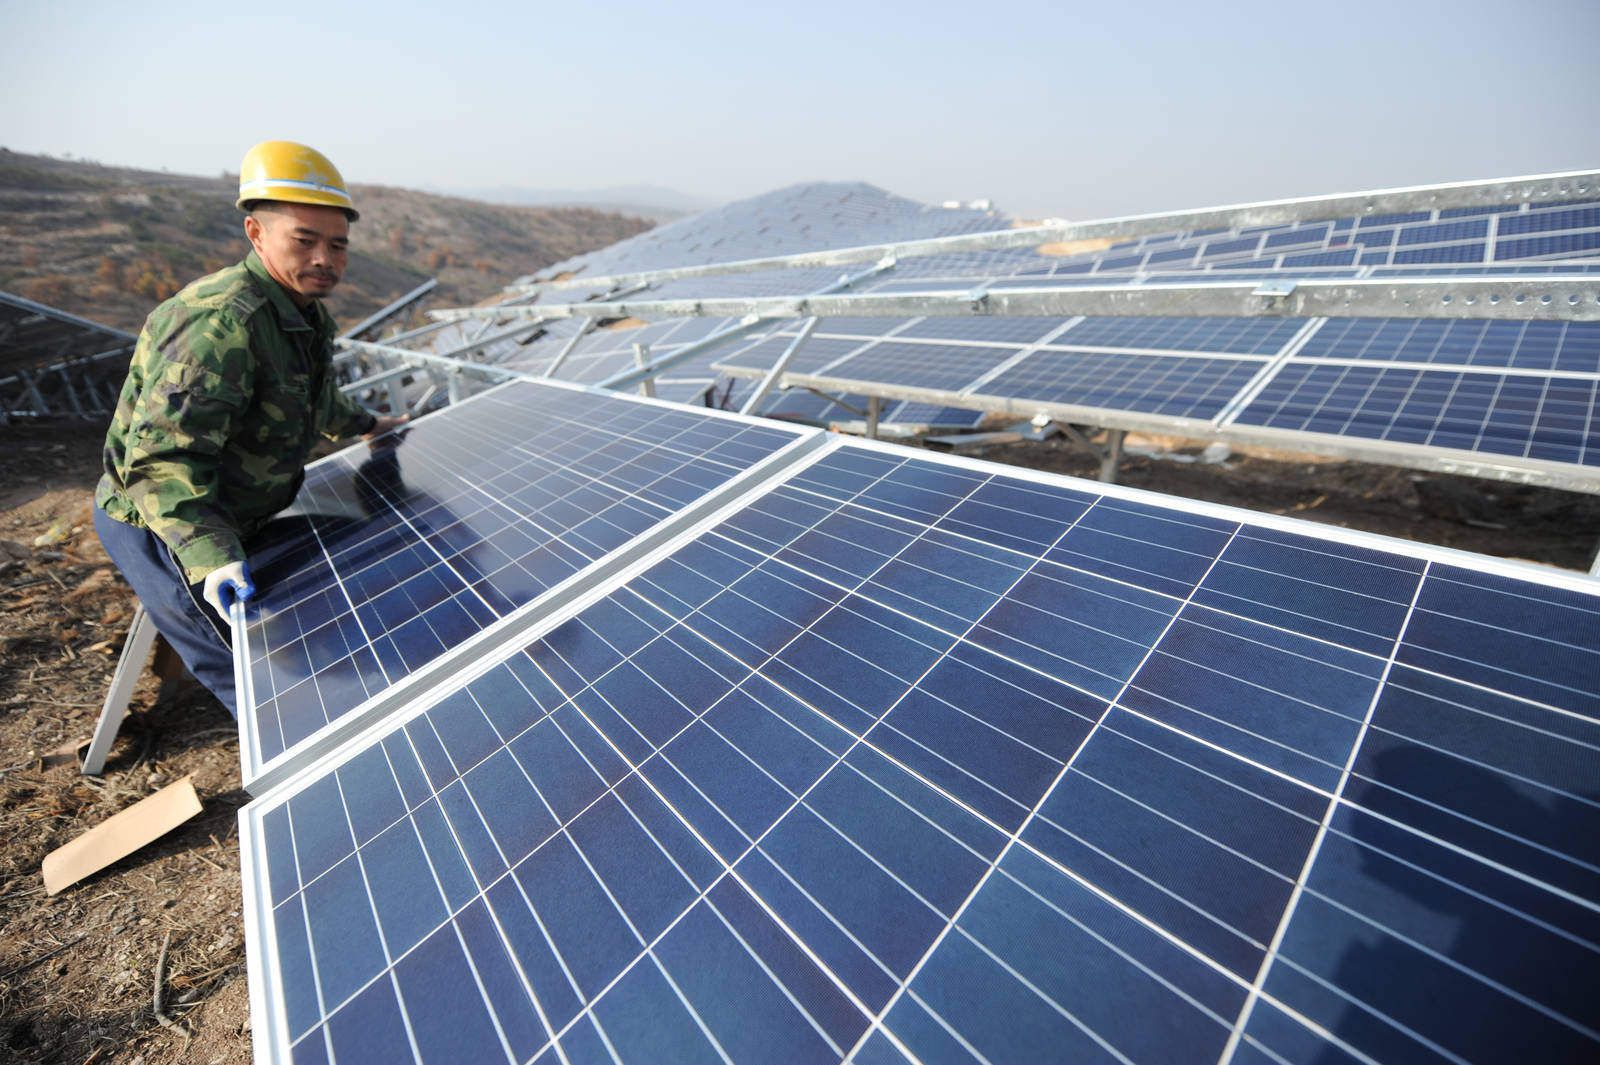 A solar photovoltaic power project in Yantai, Shandong Province of China.